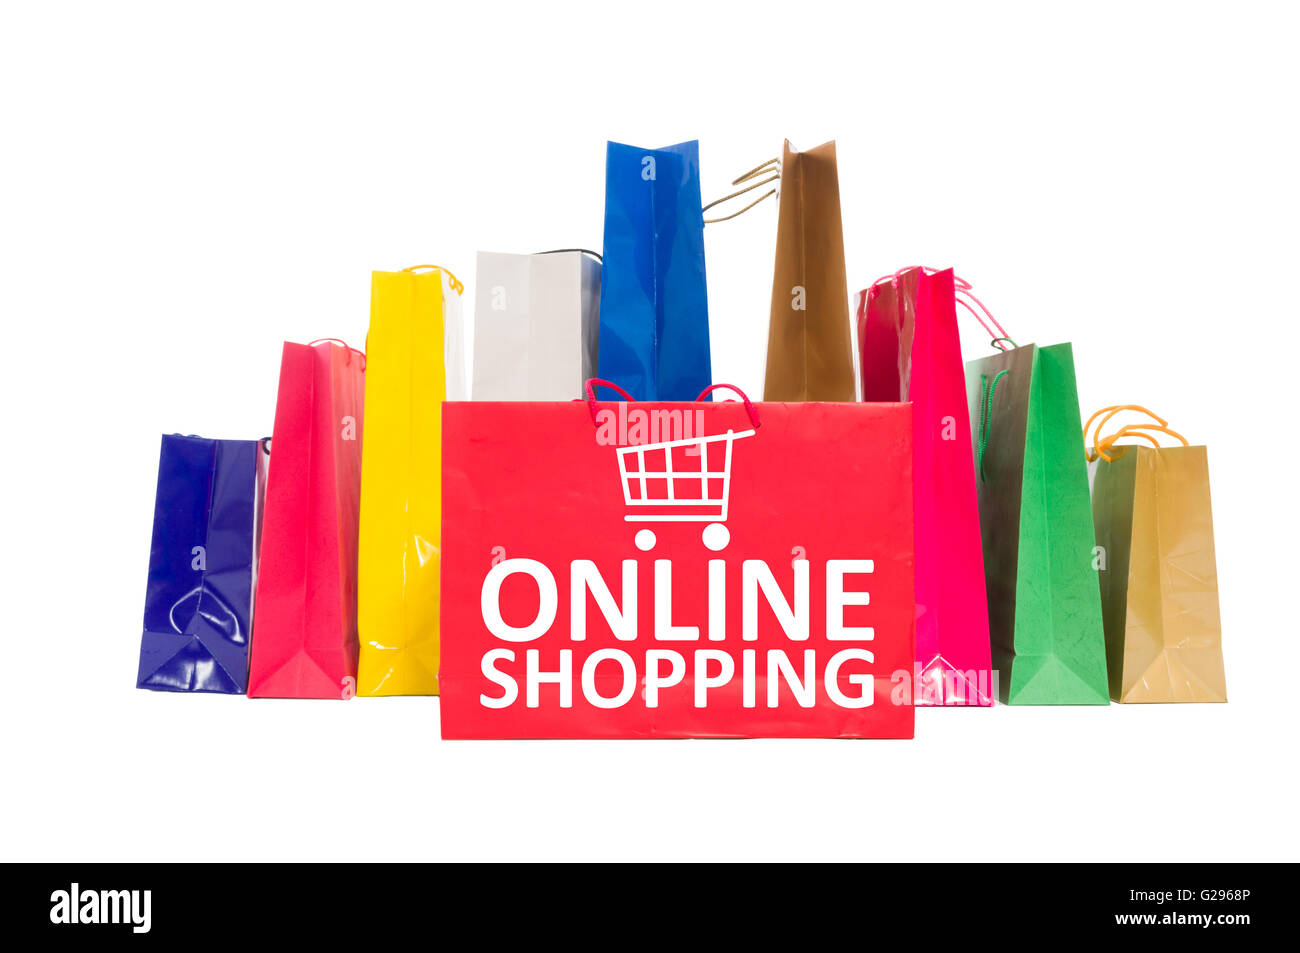 online shopping concept using shopping bags isolated on white stock photo 104694038 alamy. Black Bedroom Furniture Sets. Home Design Ideas